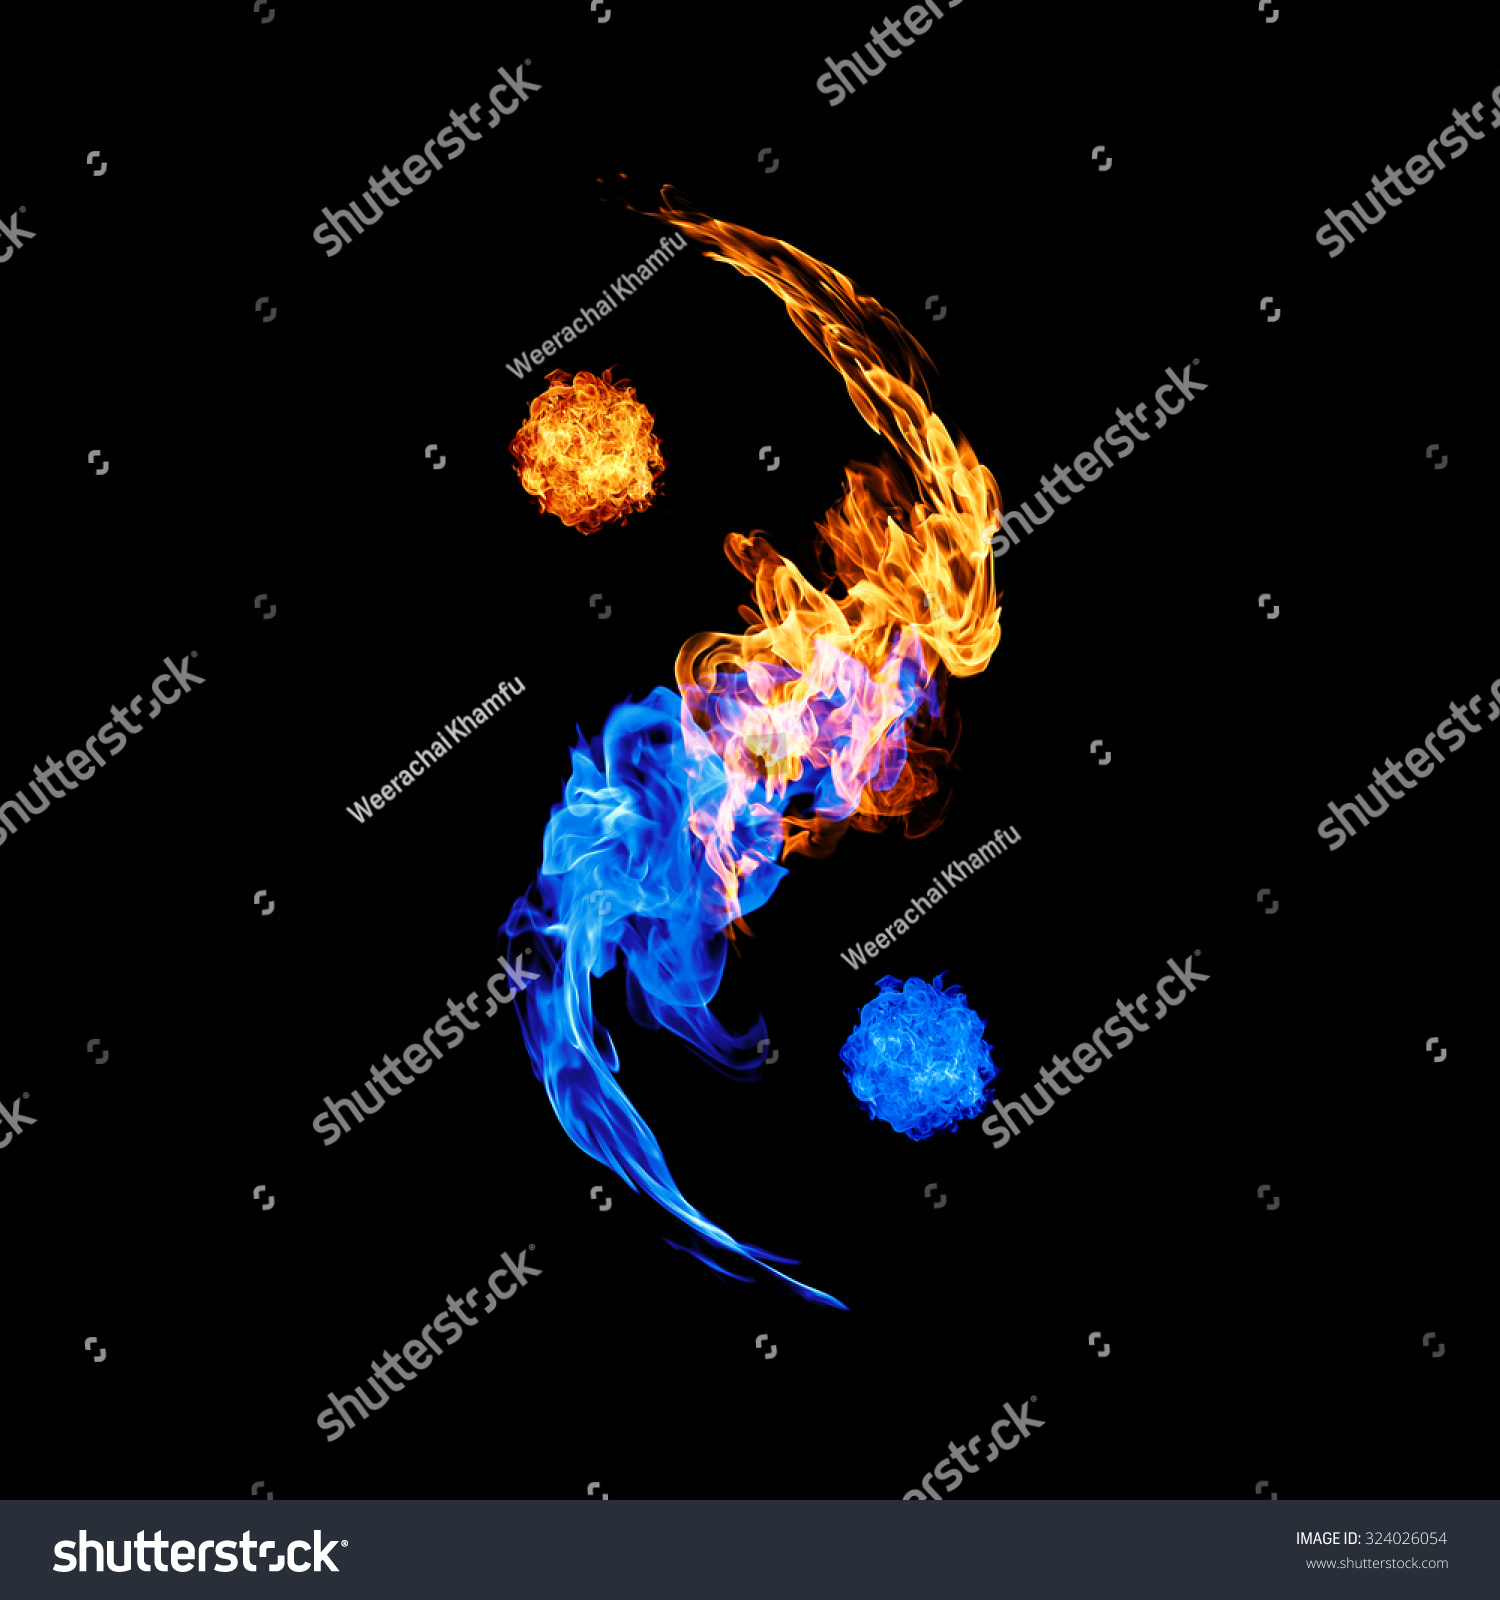 Symbol yin yang dark background form stock photo 324026054 symbol of yin and yang of the dark background in the form of fire and water biocorpaavc Choice Image